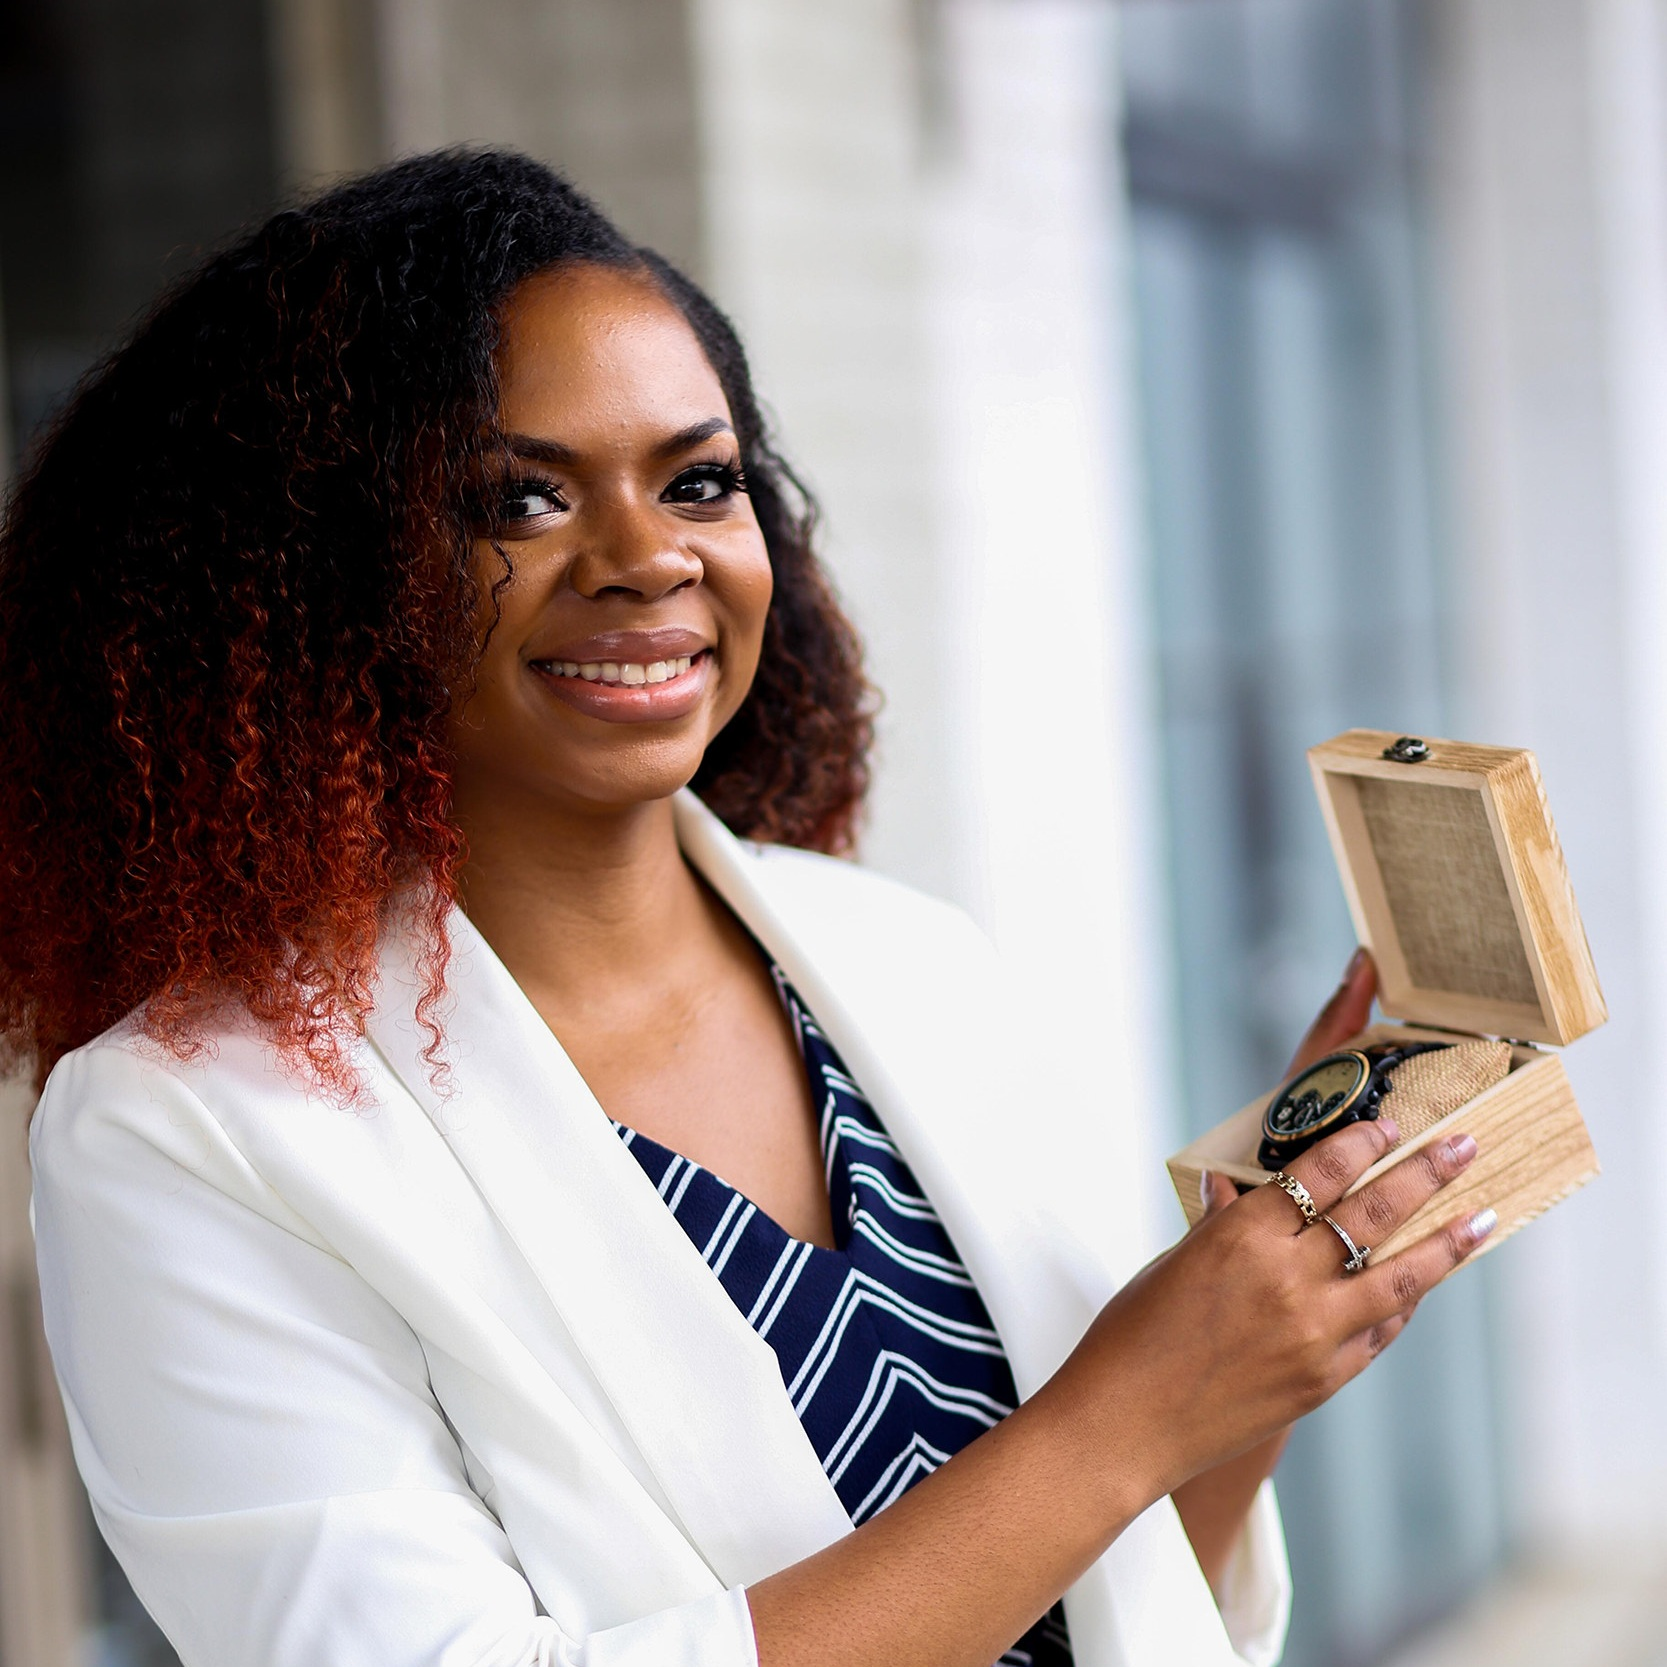 Meet Shanayla, the wooden watch creator behind  @AFewWoodMen_   Location: Atlanta, Georgia